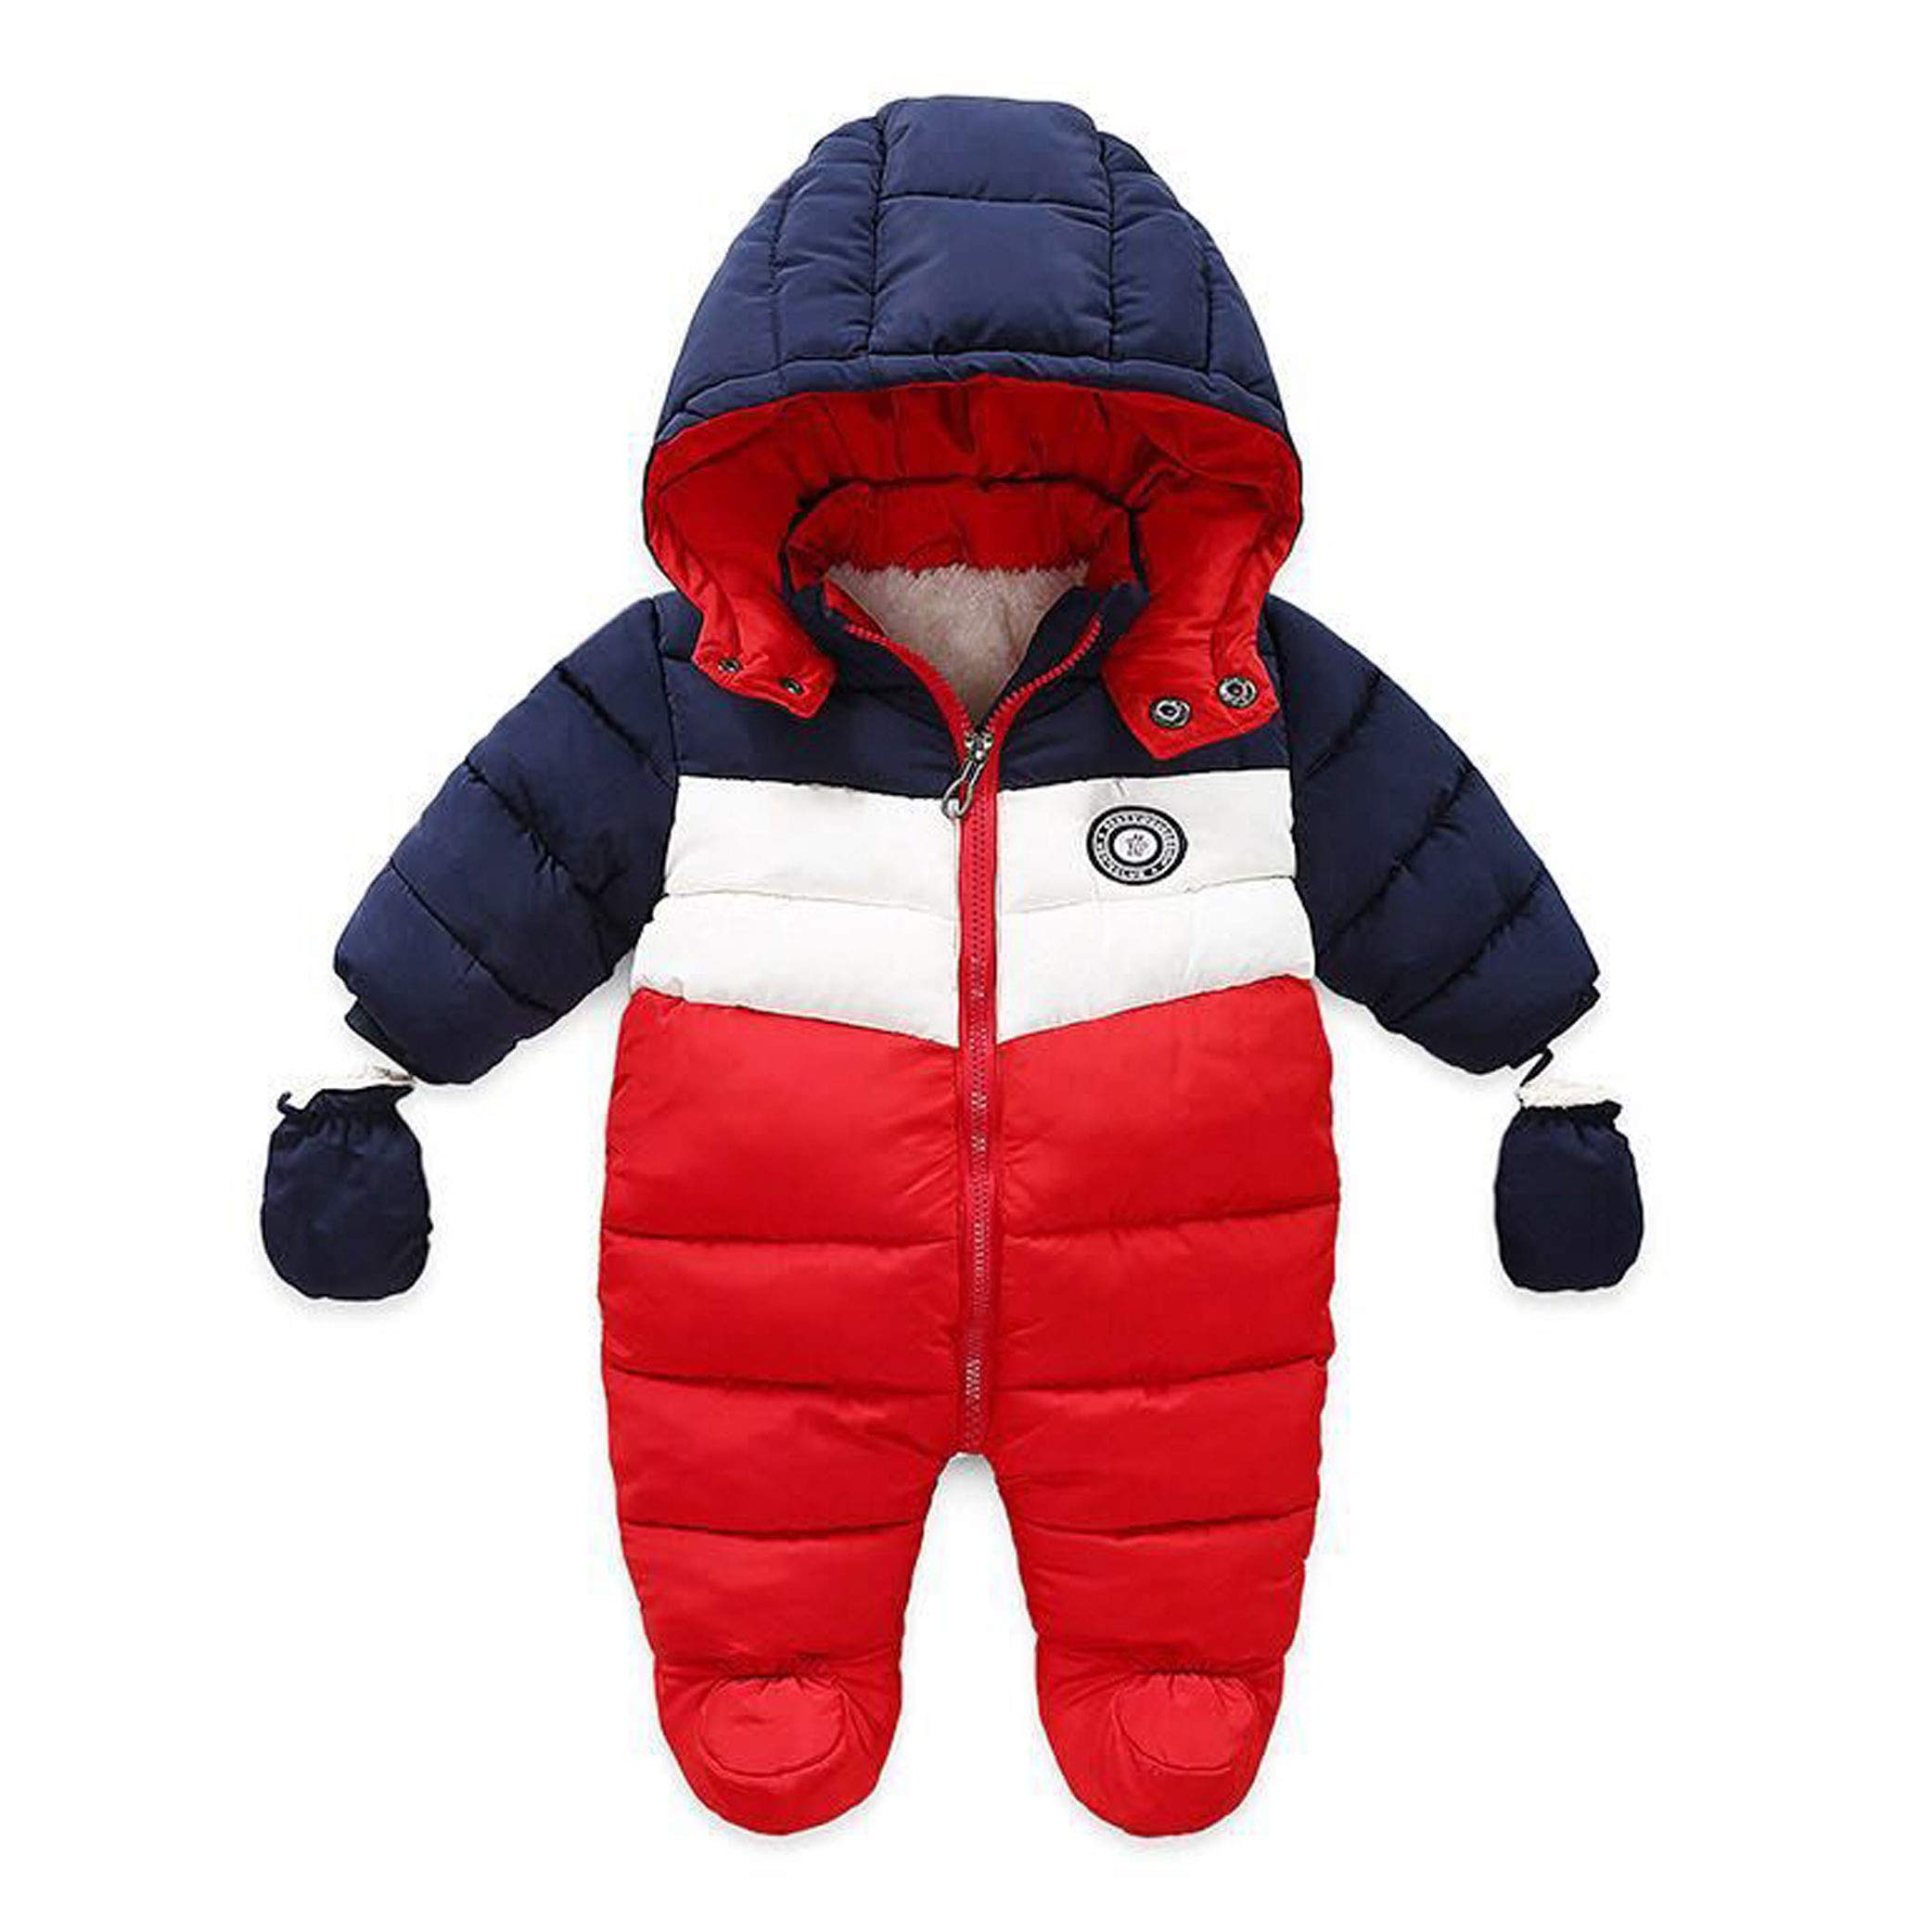 RUIMING Newborn Baby Snowsuit Infant Winter Coat Hooded Zipper Jumpsuit Outwear Footed Romper (9-12 Months) by RUIMING